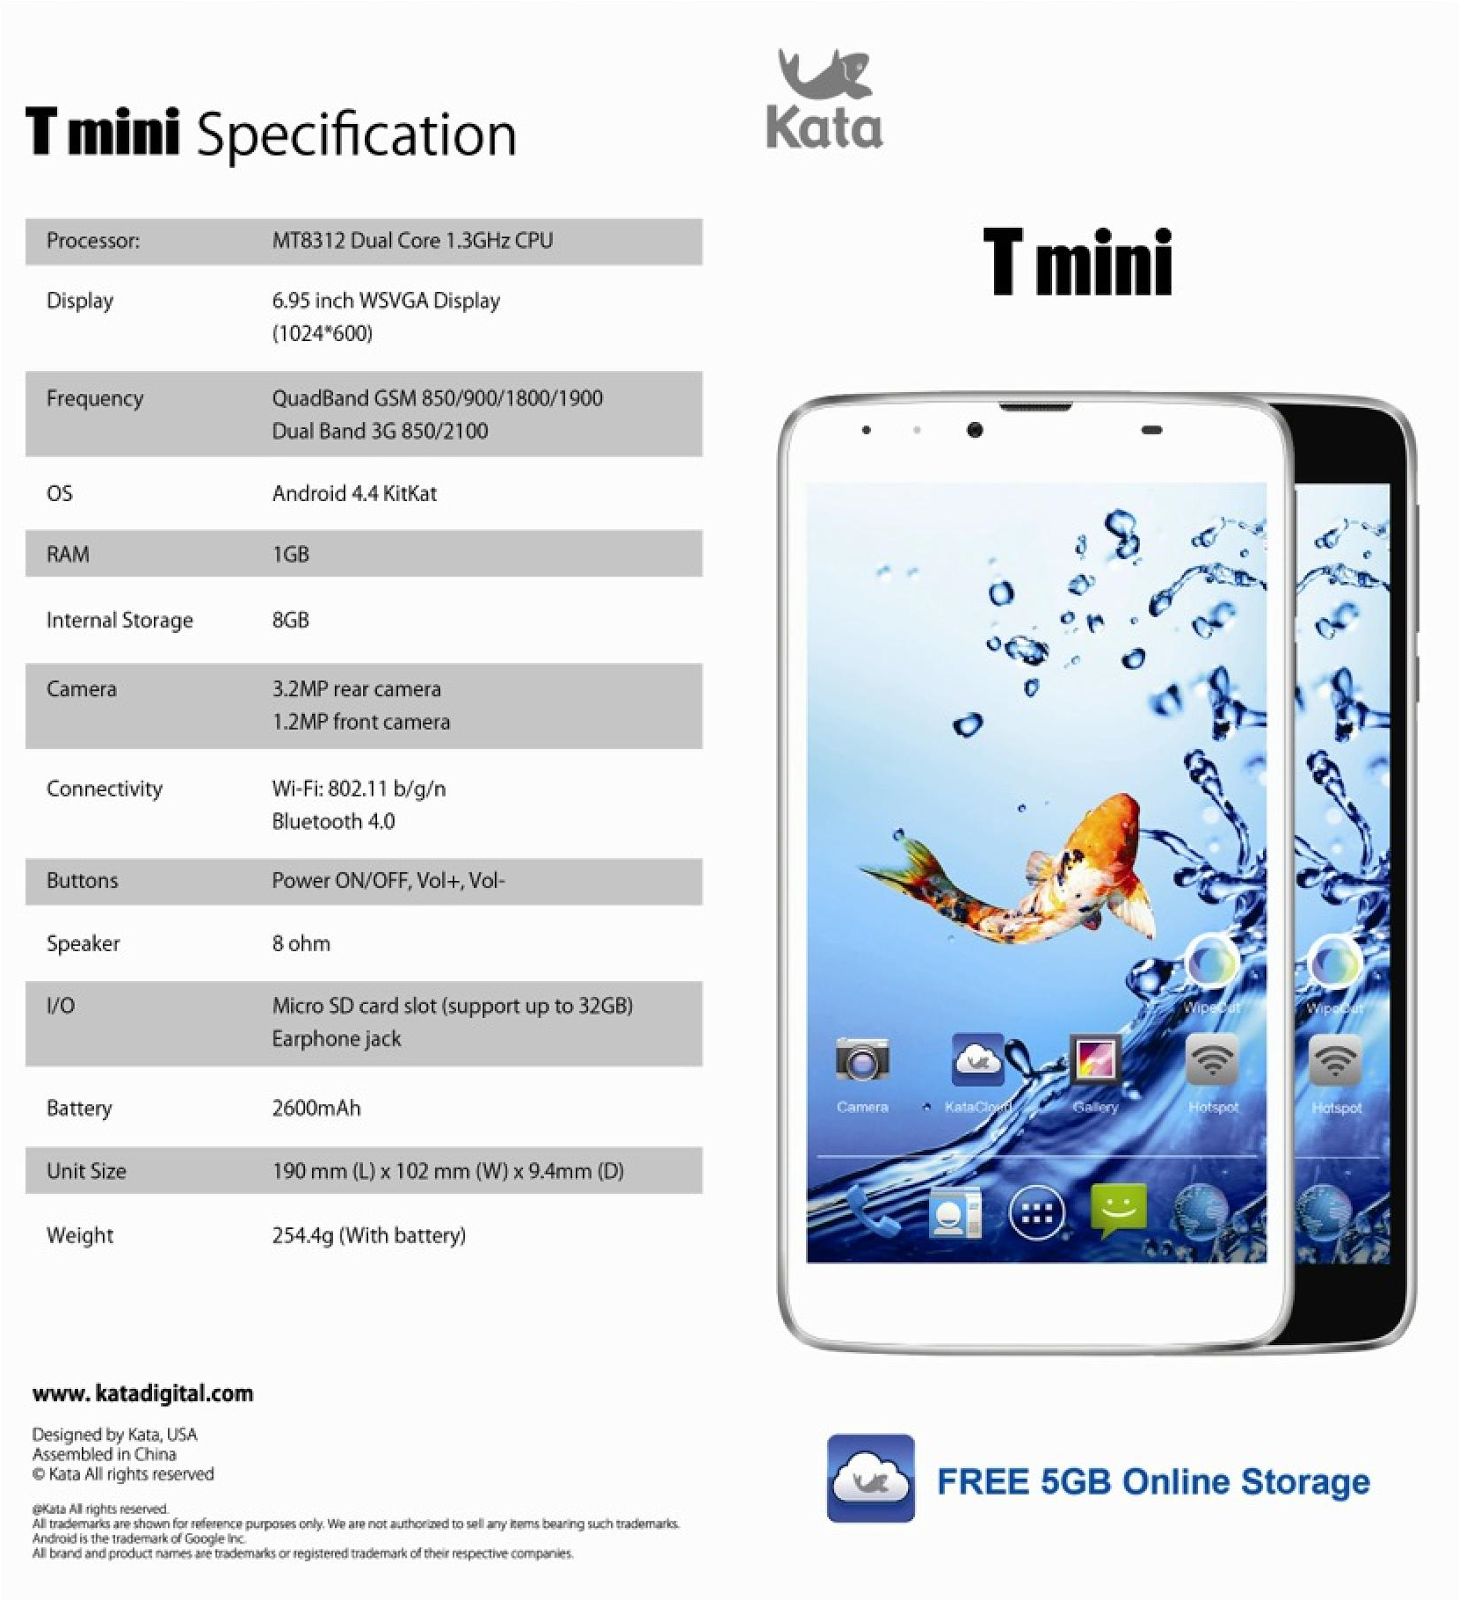 Kata T mini Tablet Specs